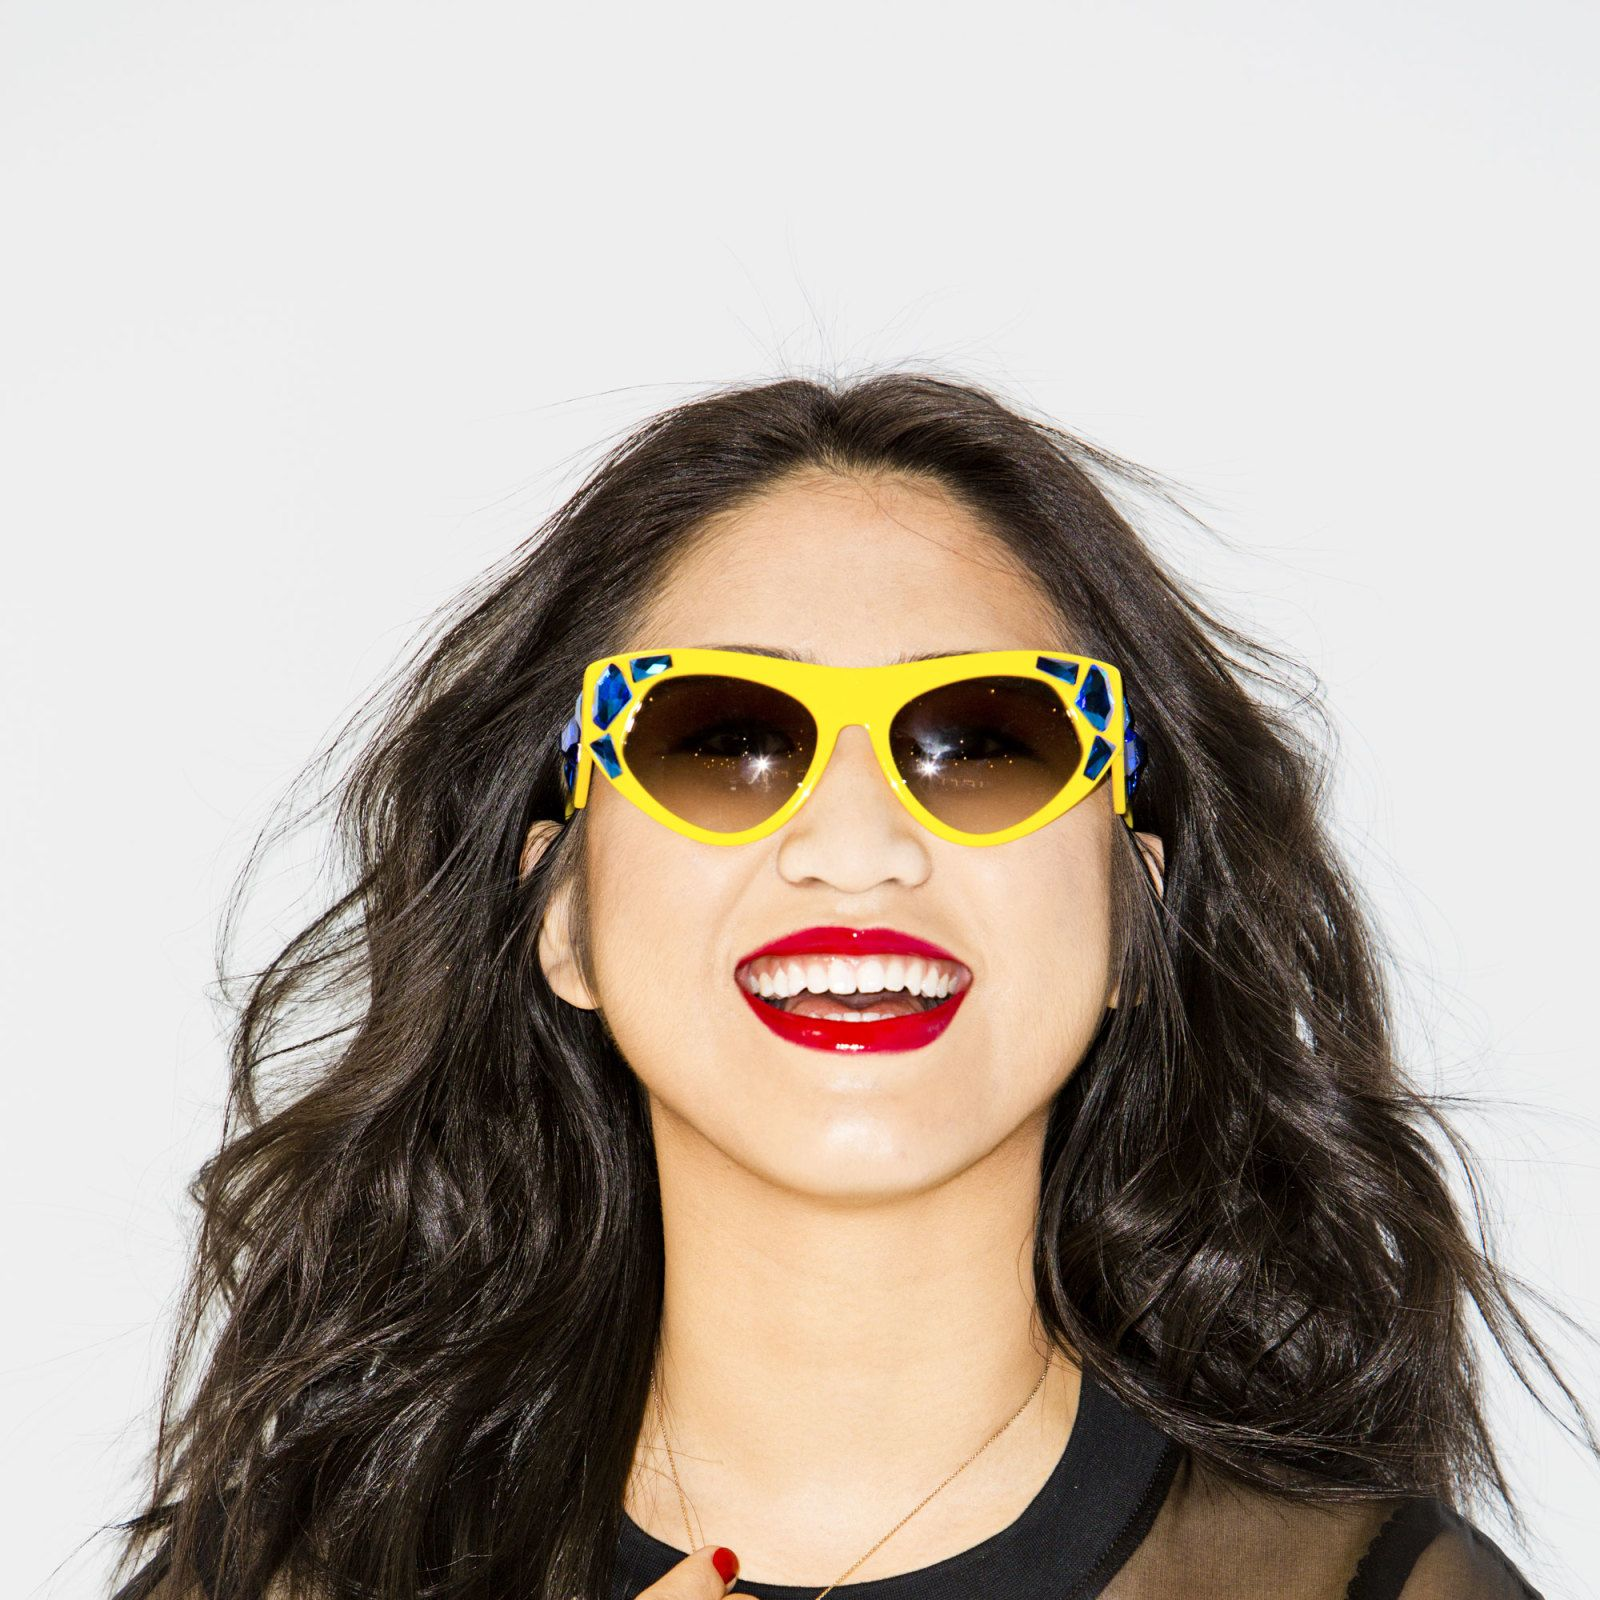 "<p>Art-history major. ""When I wear red lipstick, it reminds me of Atlanta because everyone has red UGA Bulldogs and Braves tee shirts.""</p><p>Top, Ostwald Helgason, $540. Sunglasses, Prada, $430. Necklace, Diane Kordas. All other jewelry, Shannon's own.</p>"